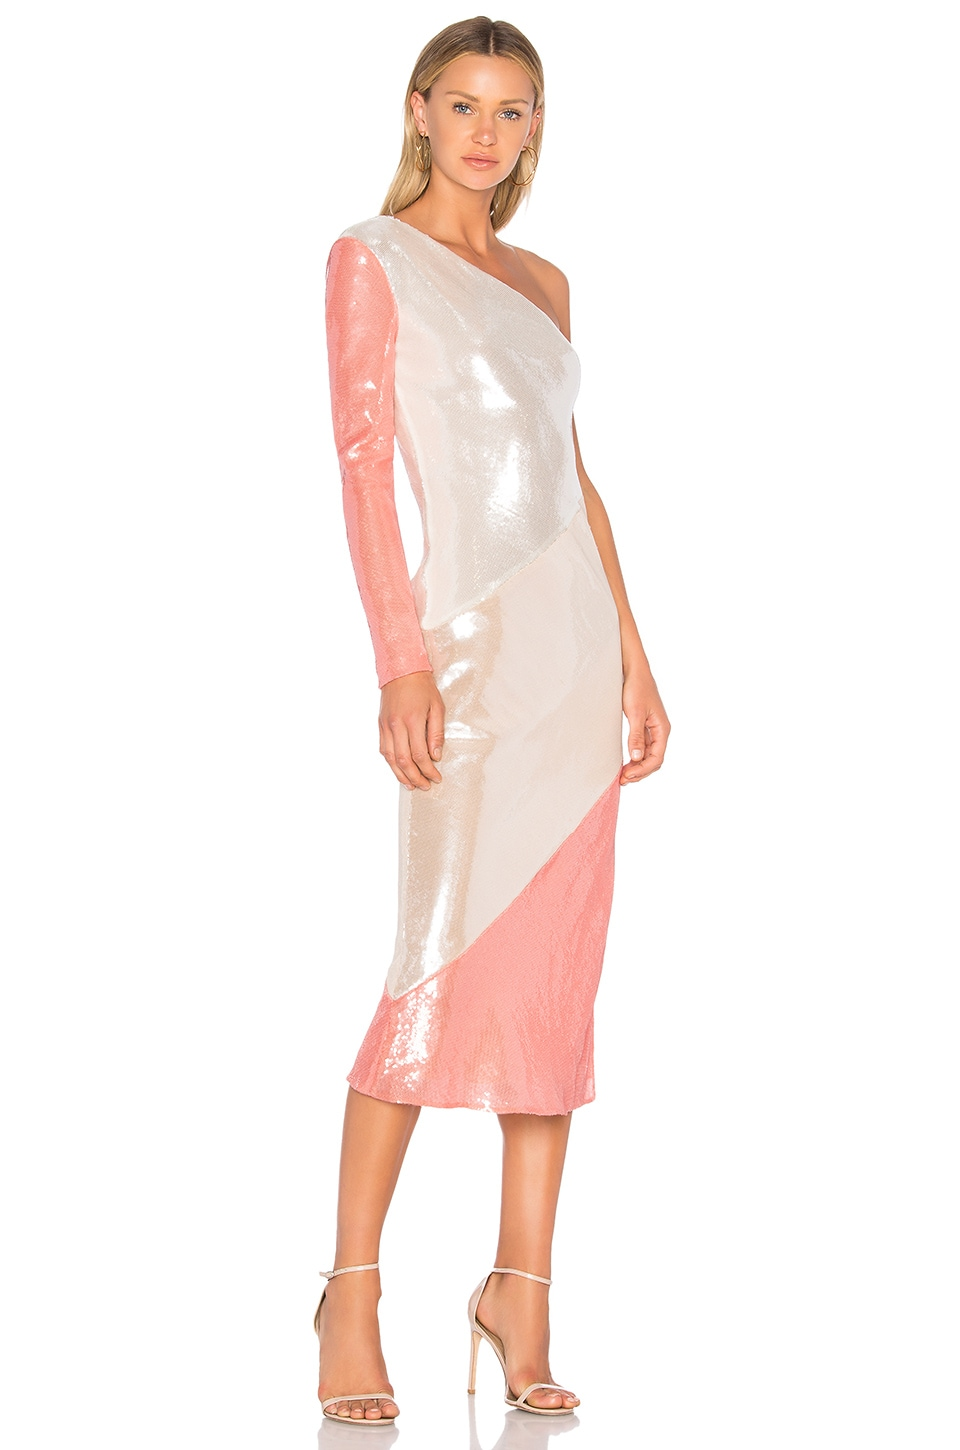 Bias Midi Dress by Diane von Furstenberg